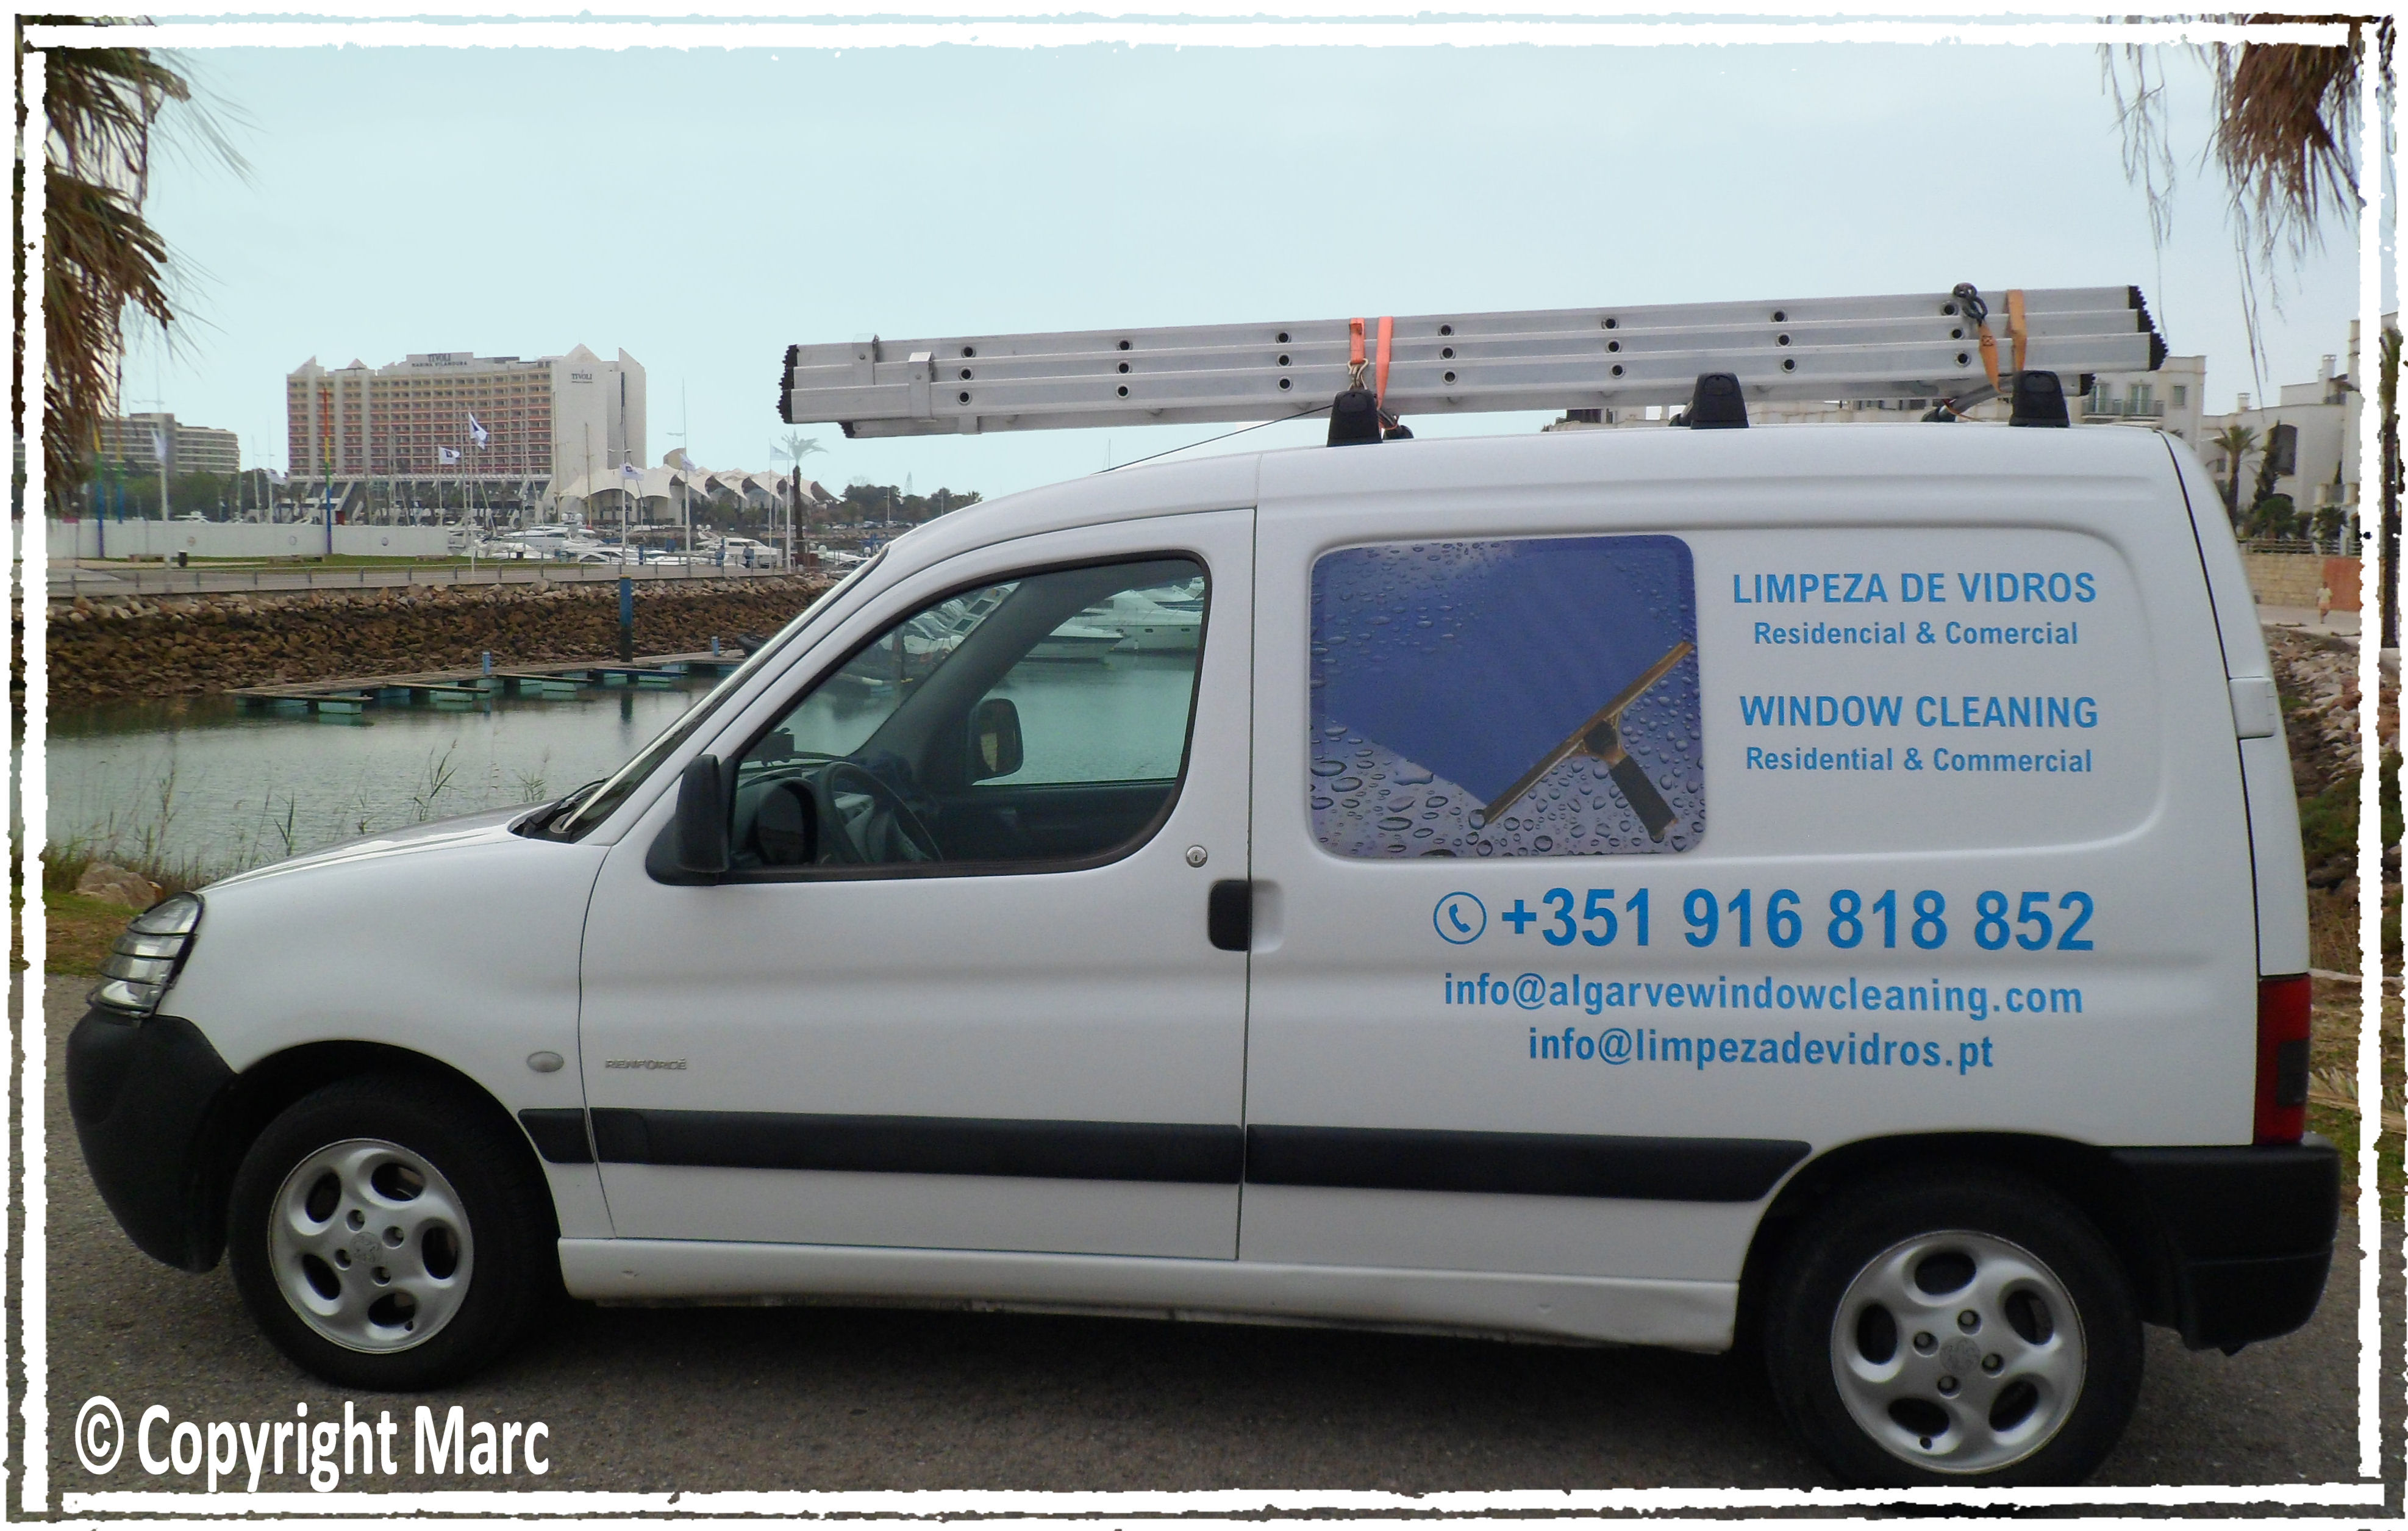 Algarve Window Cleaning Van